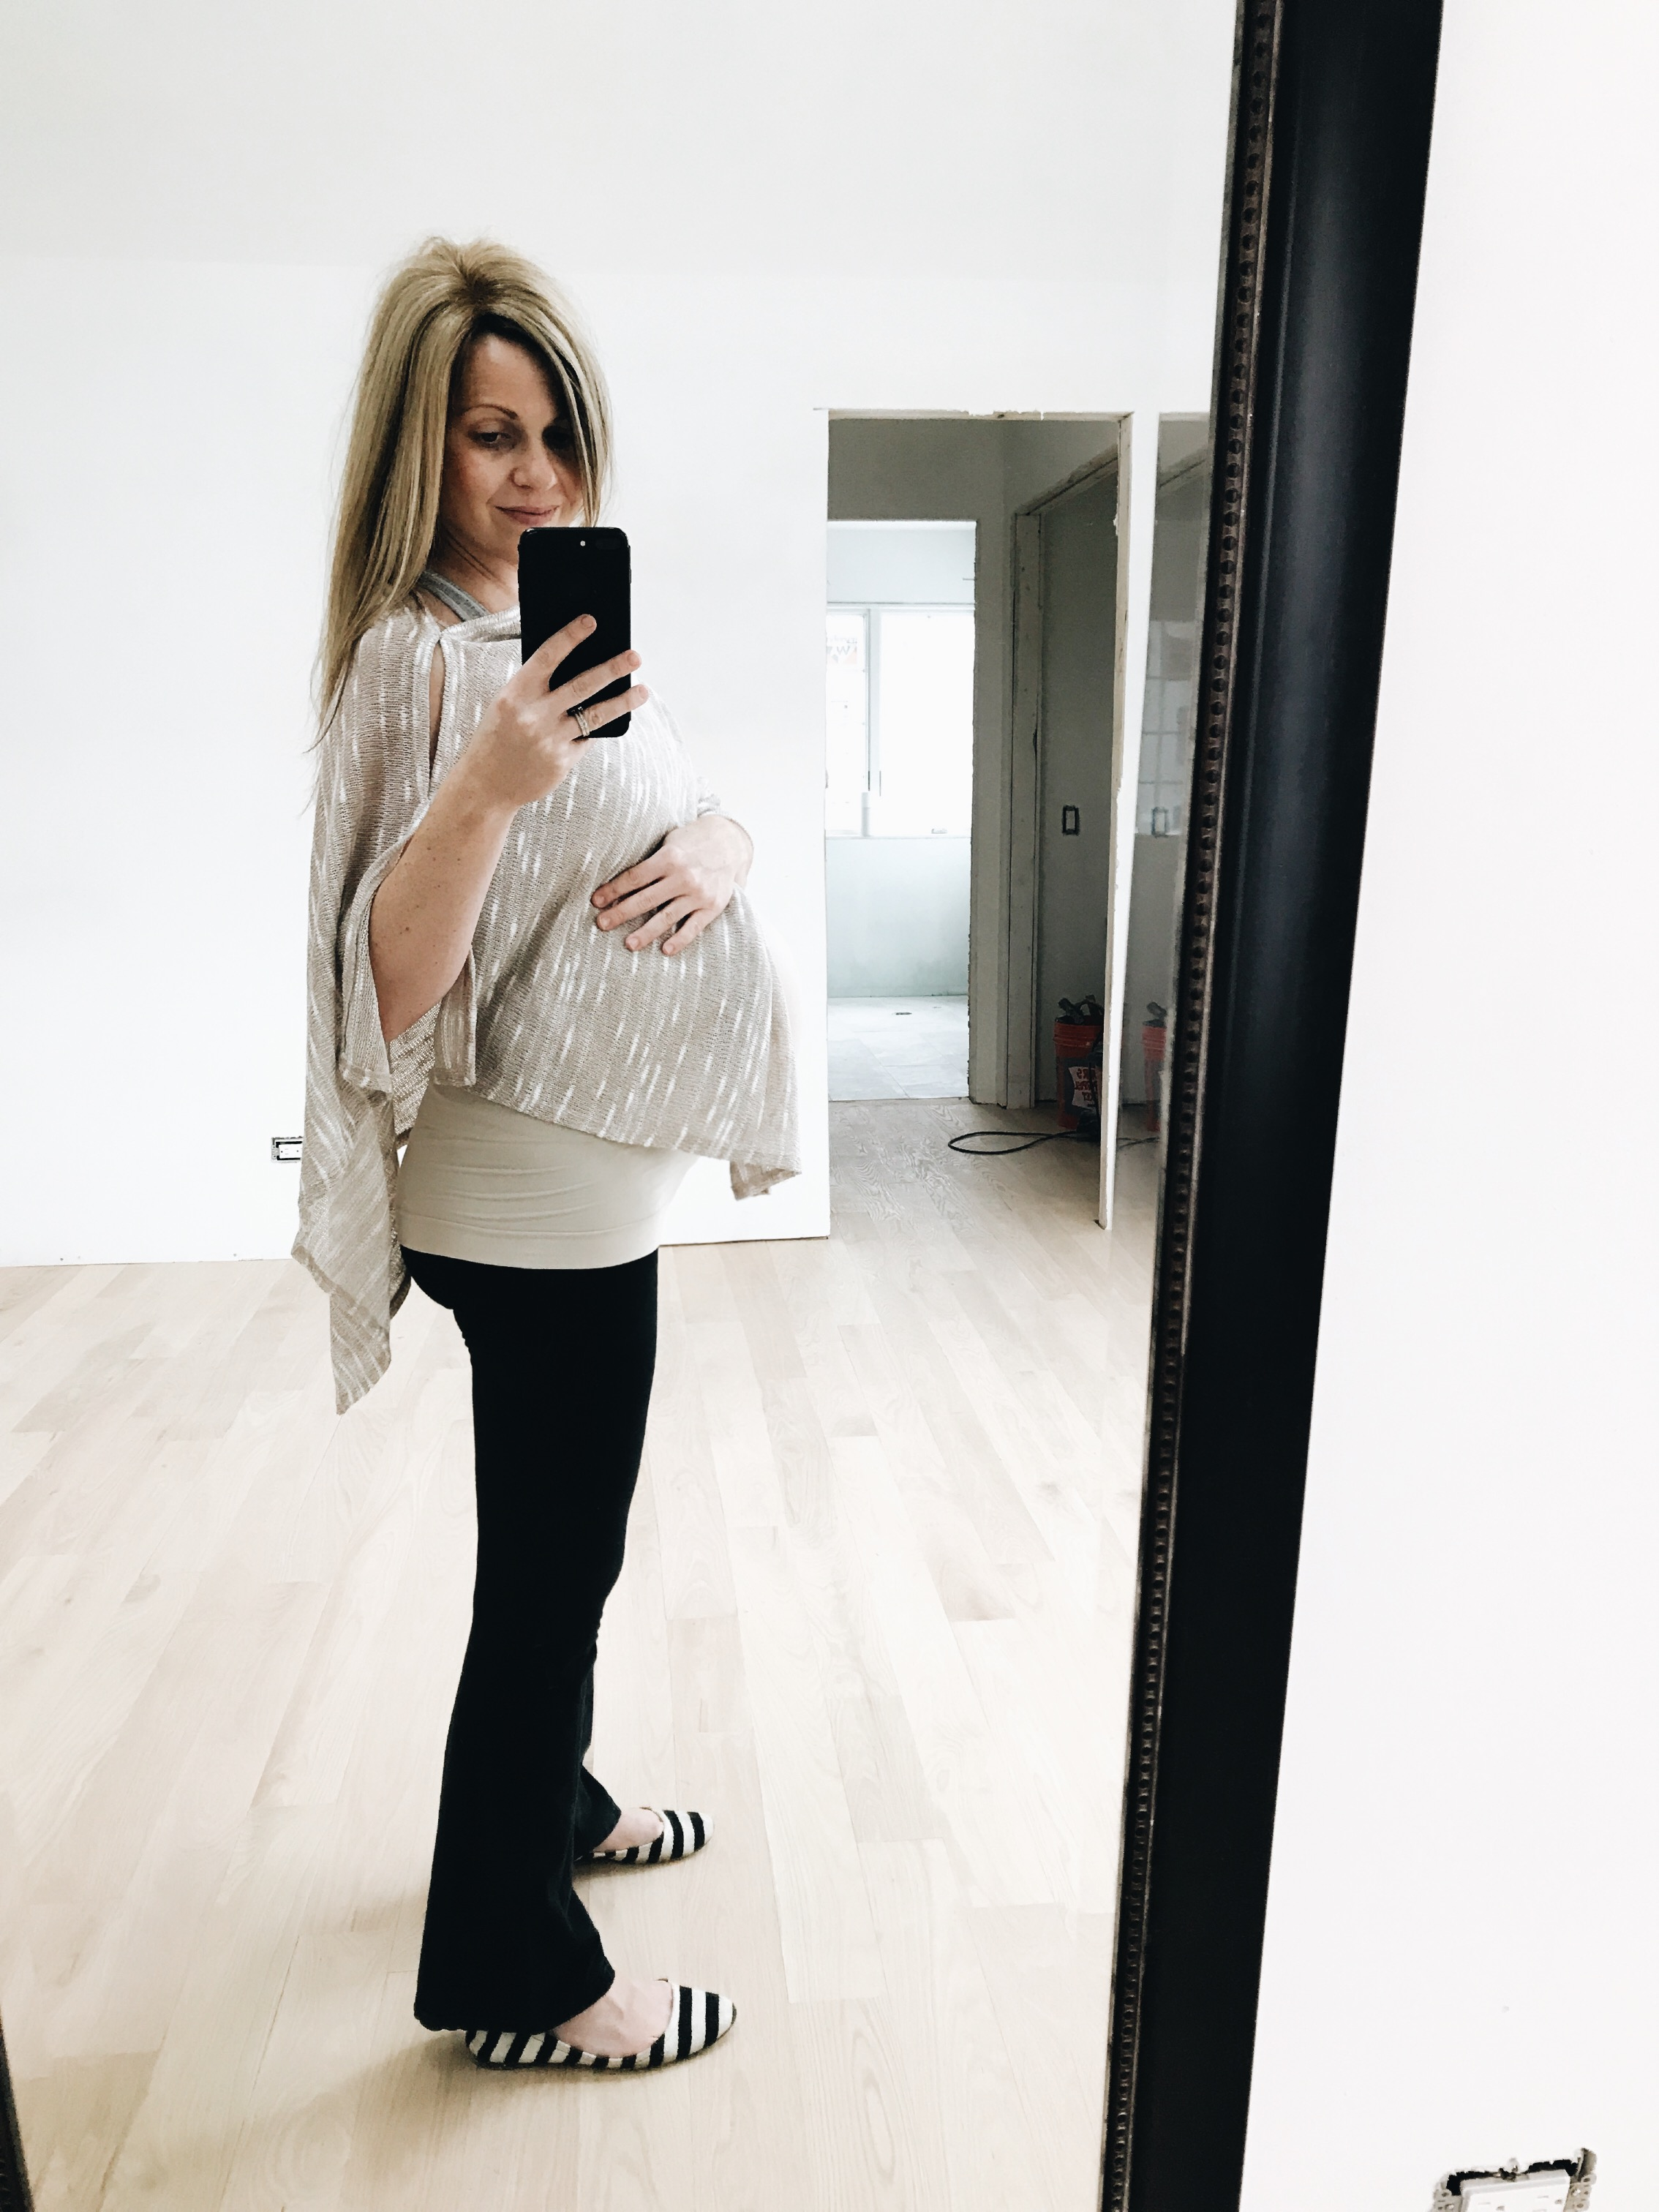 How To Prepare For Baby In Those Final Days Of Pregnancy. 39-week Bumpdate